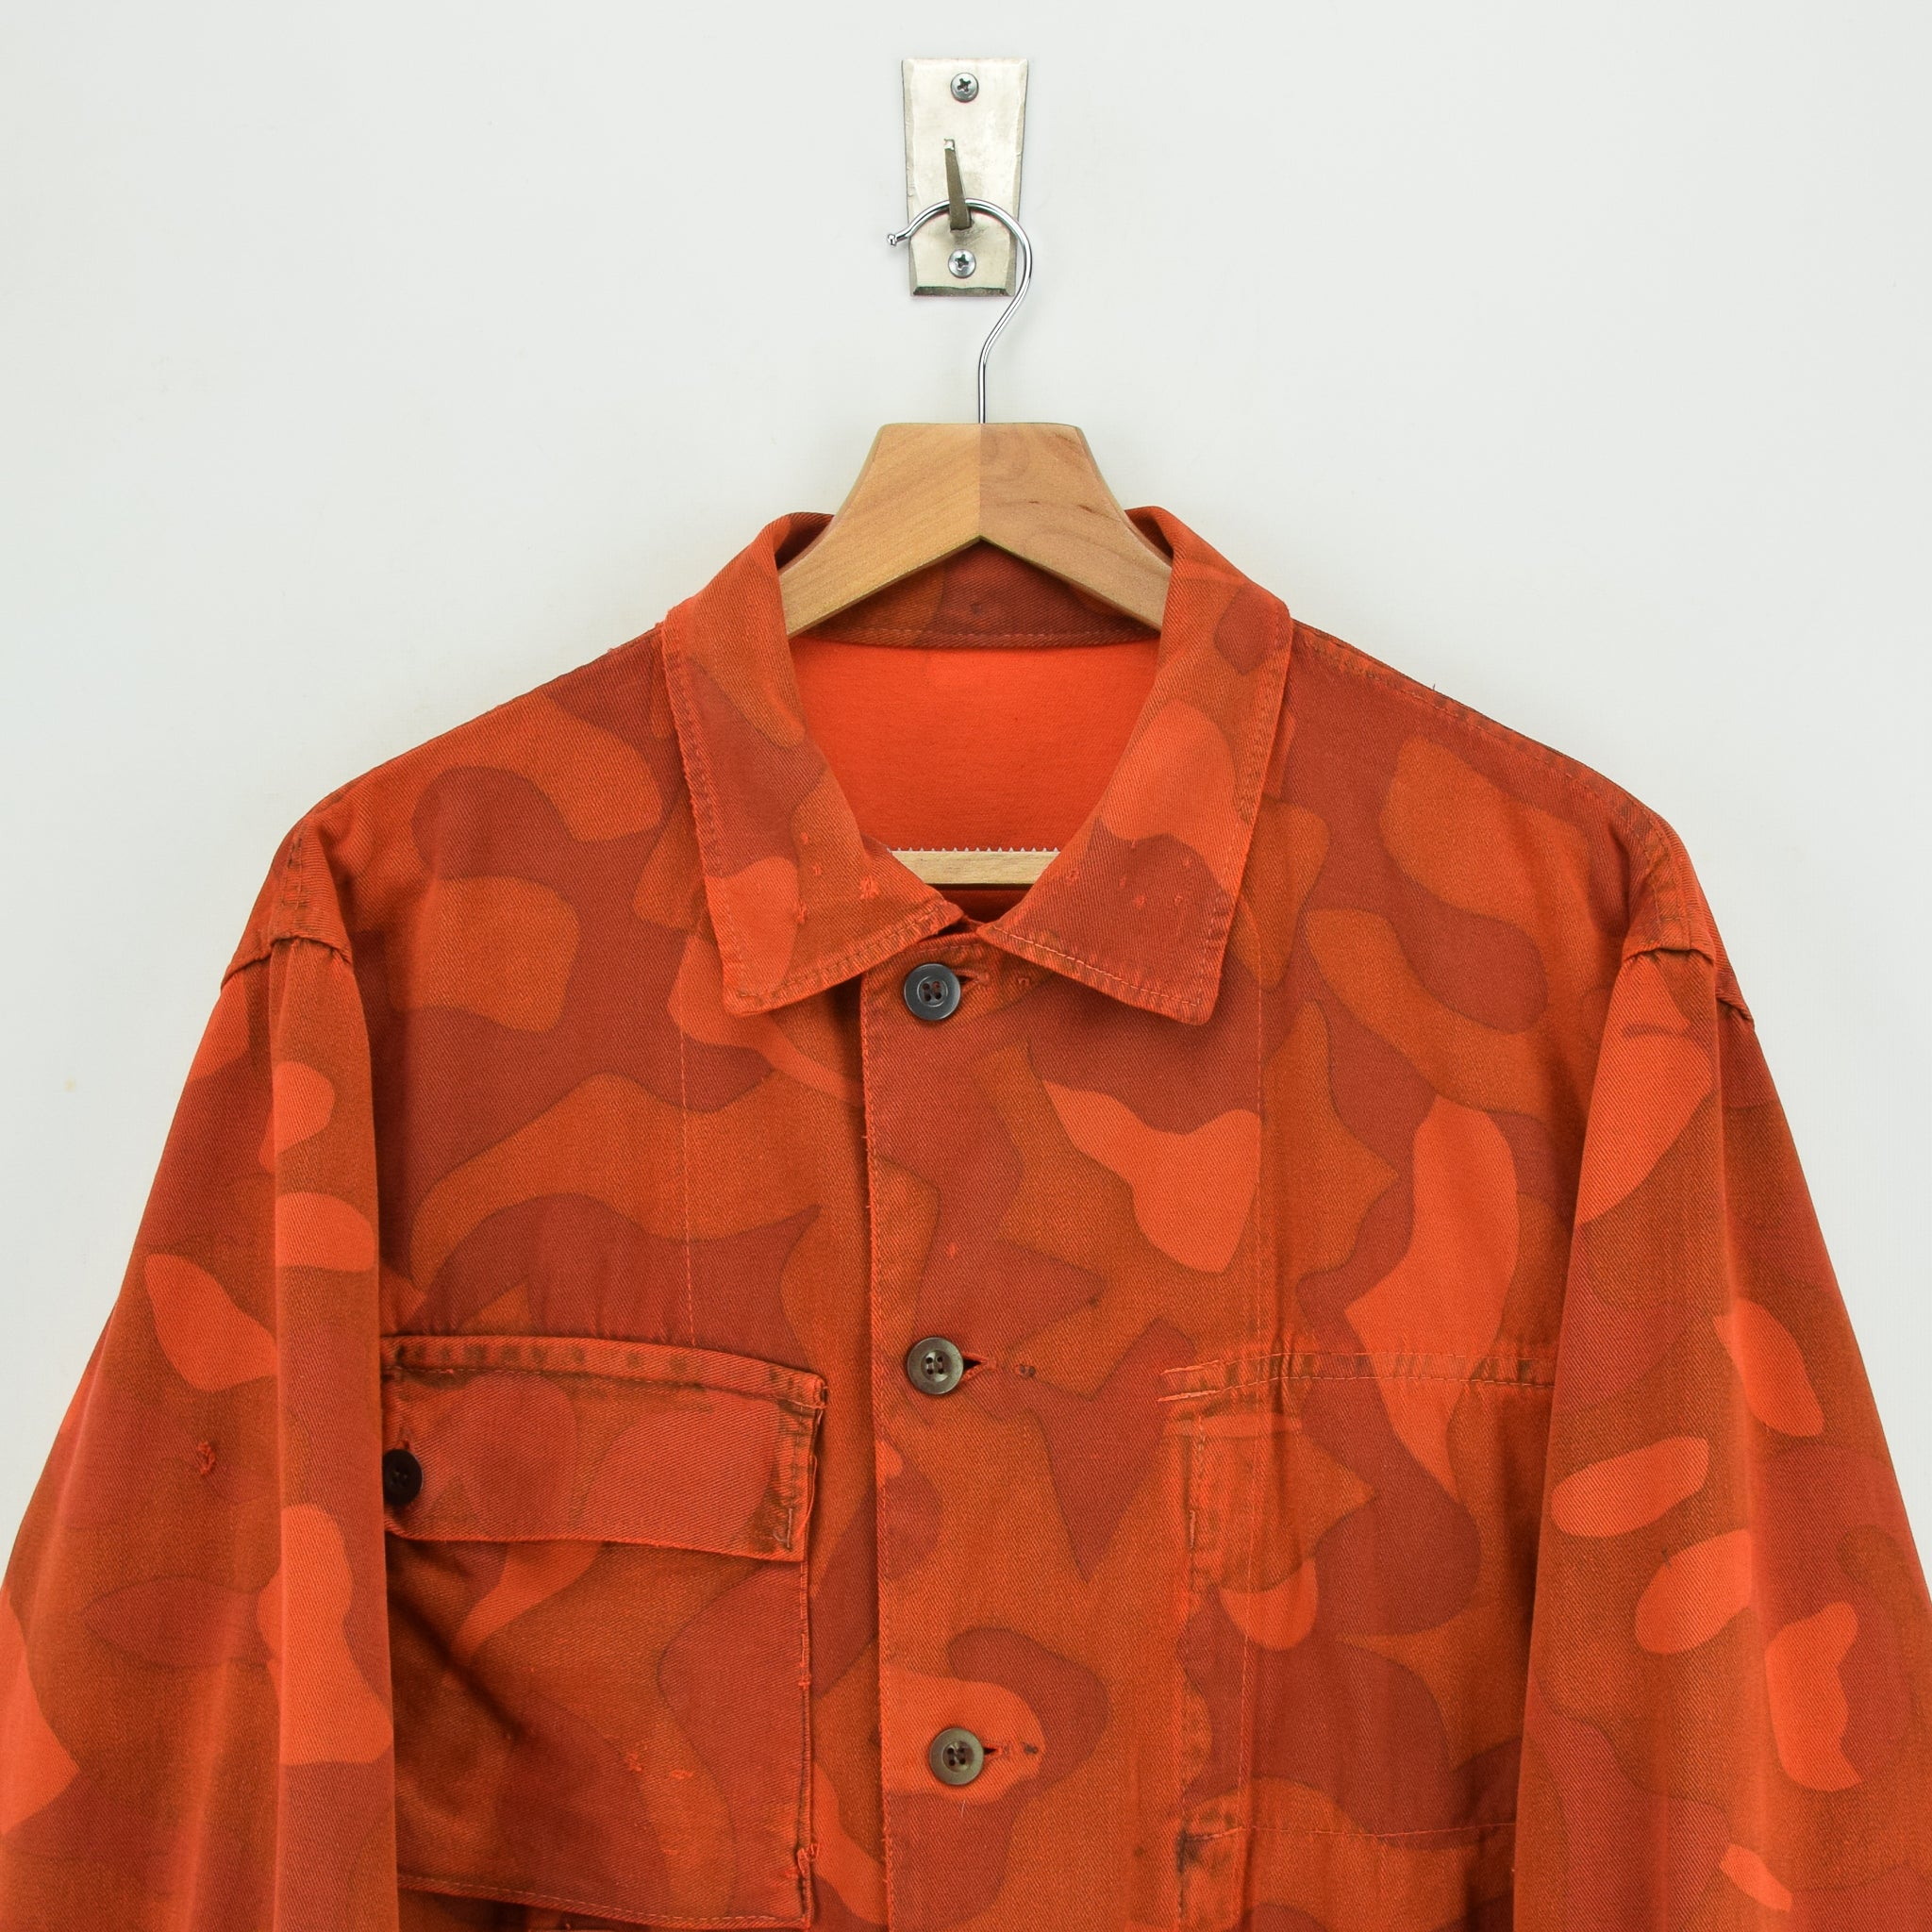 Vintage 70s Military Finnish Army Orange Overdyed Camo Mountain Field Jacket L chest